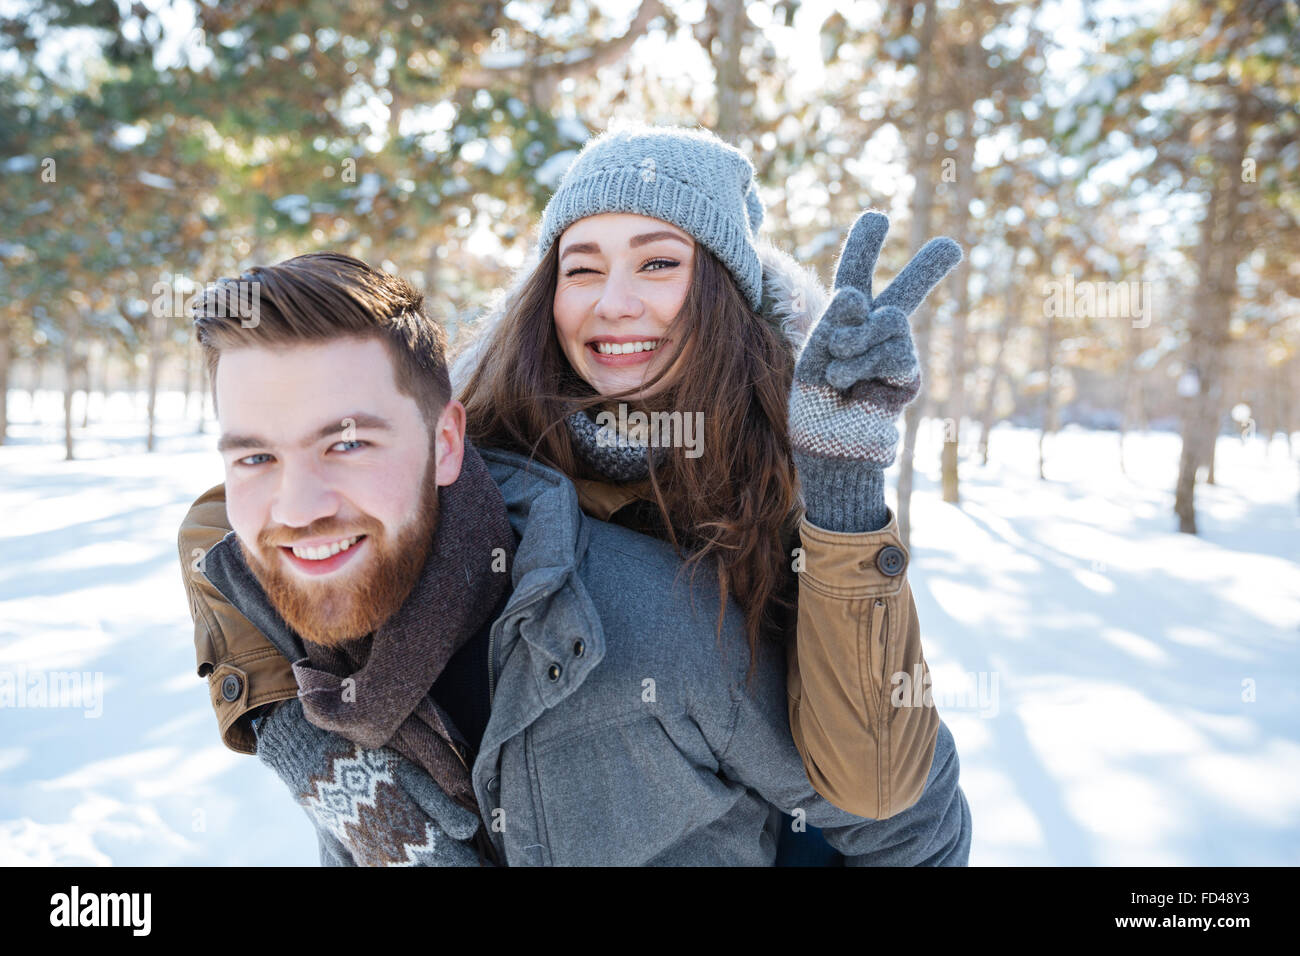 Happy young couple walking in winter park and showing victory sign at camera - Stock Image